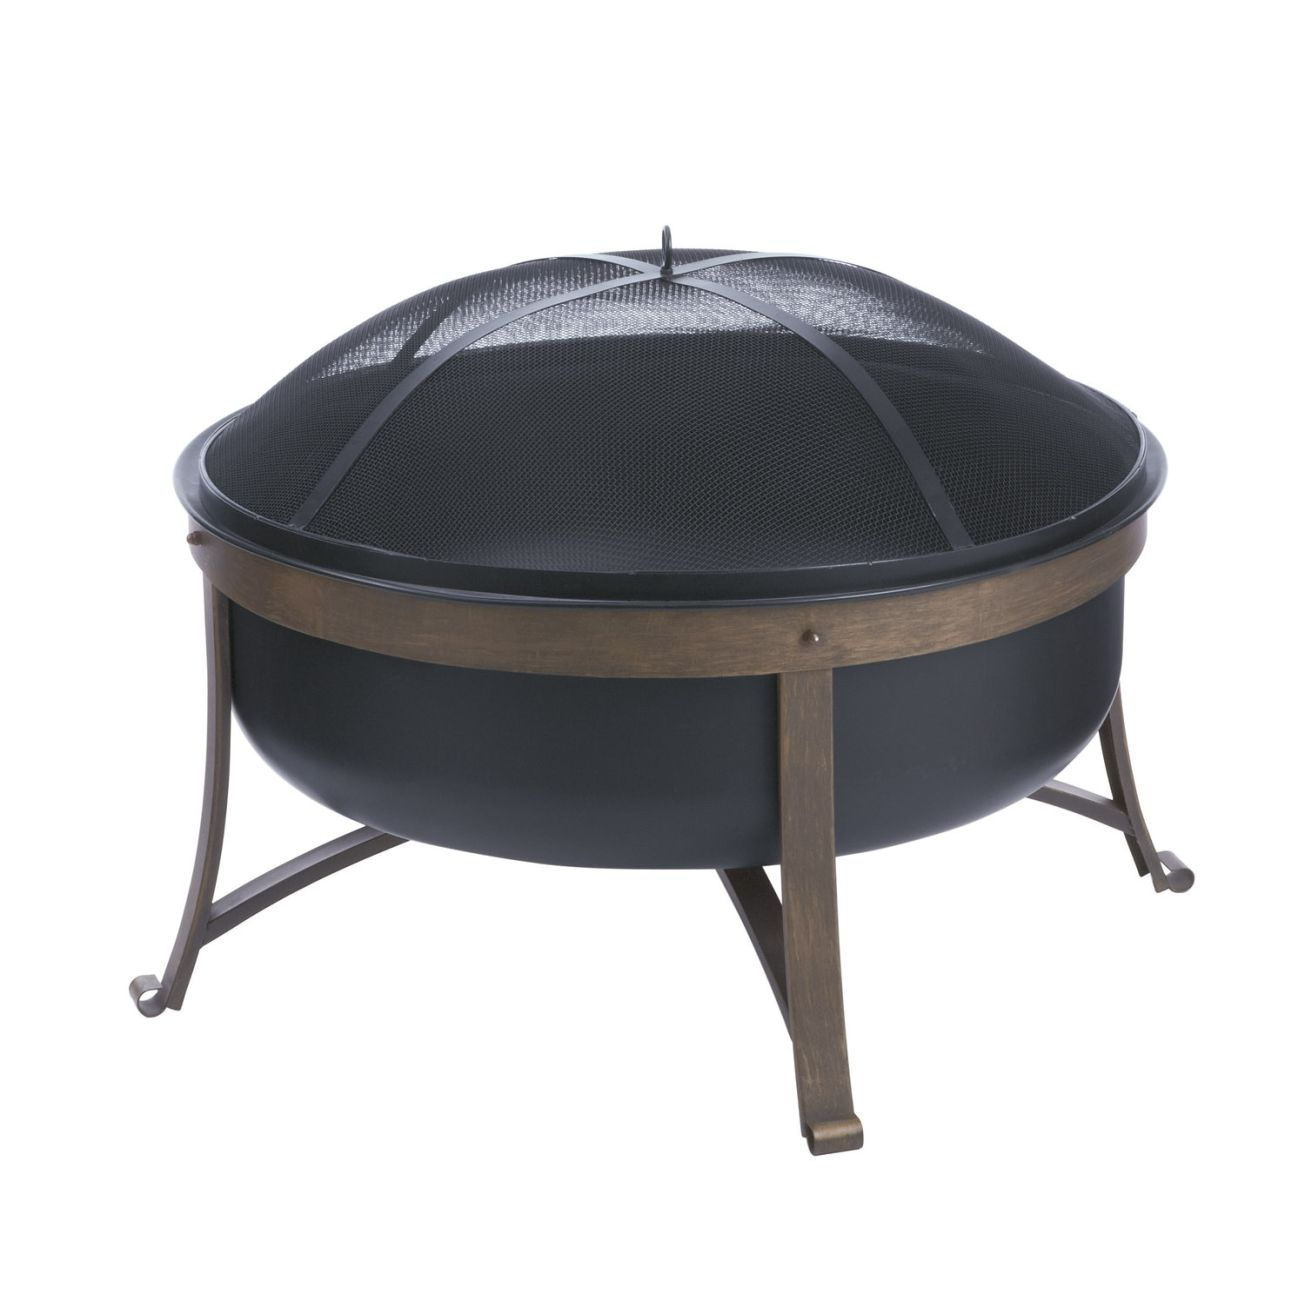 32in Deep Bowl Fire Pit - Outdoor Fireplaces - Ace ... on Ace Hardware Fire Pit  id=17519